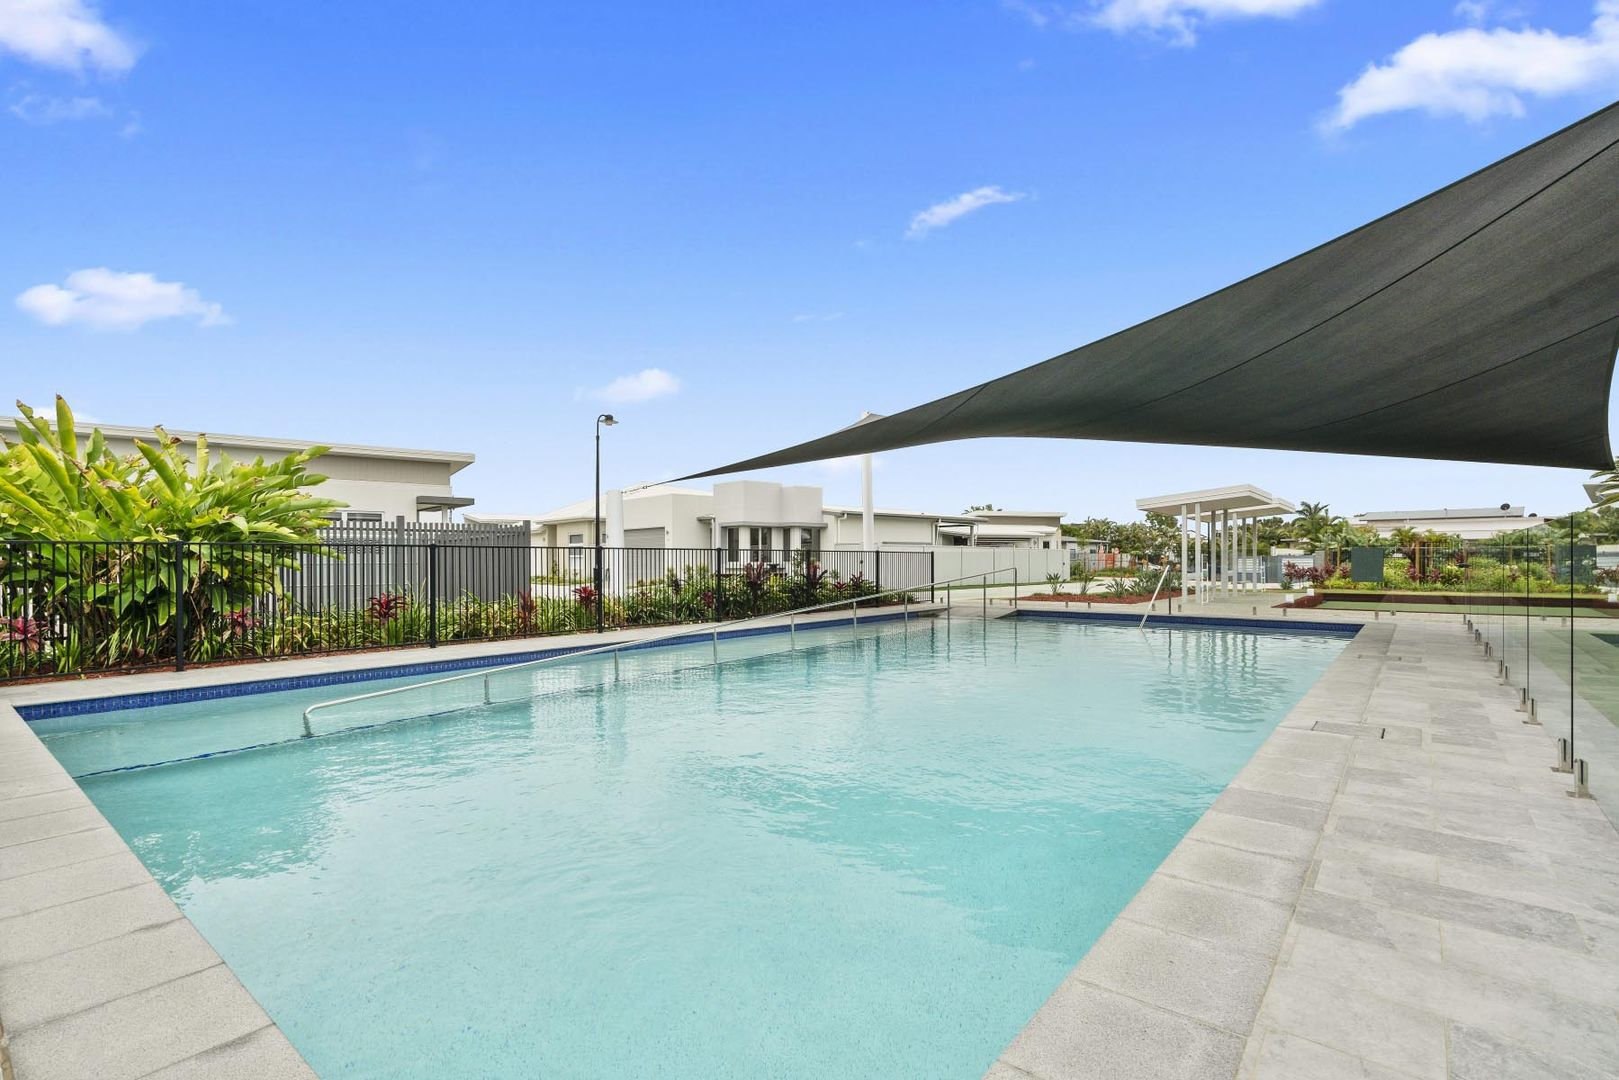 2 Spinnaker Drive, Sandstone Point, QLD 4511, Image 0